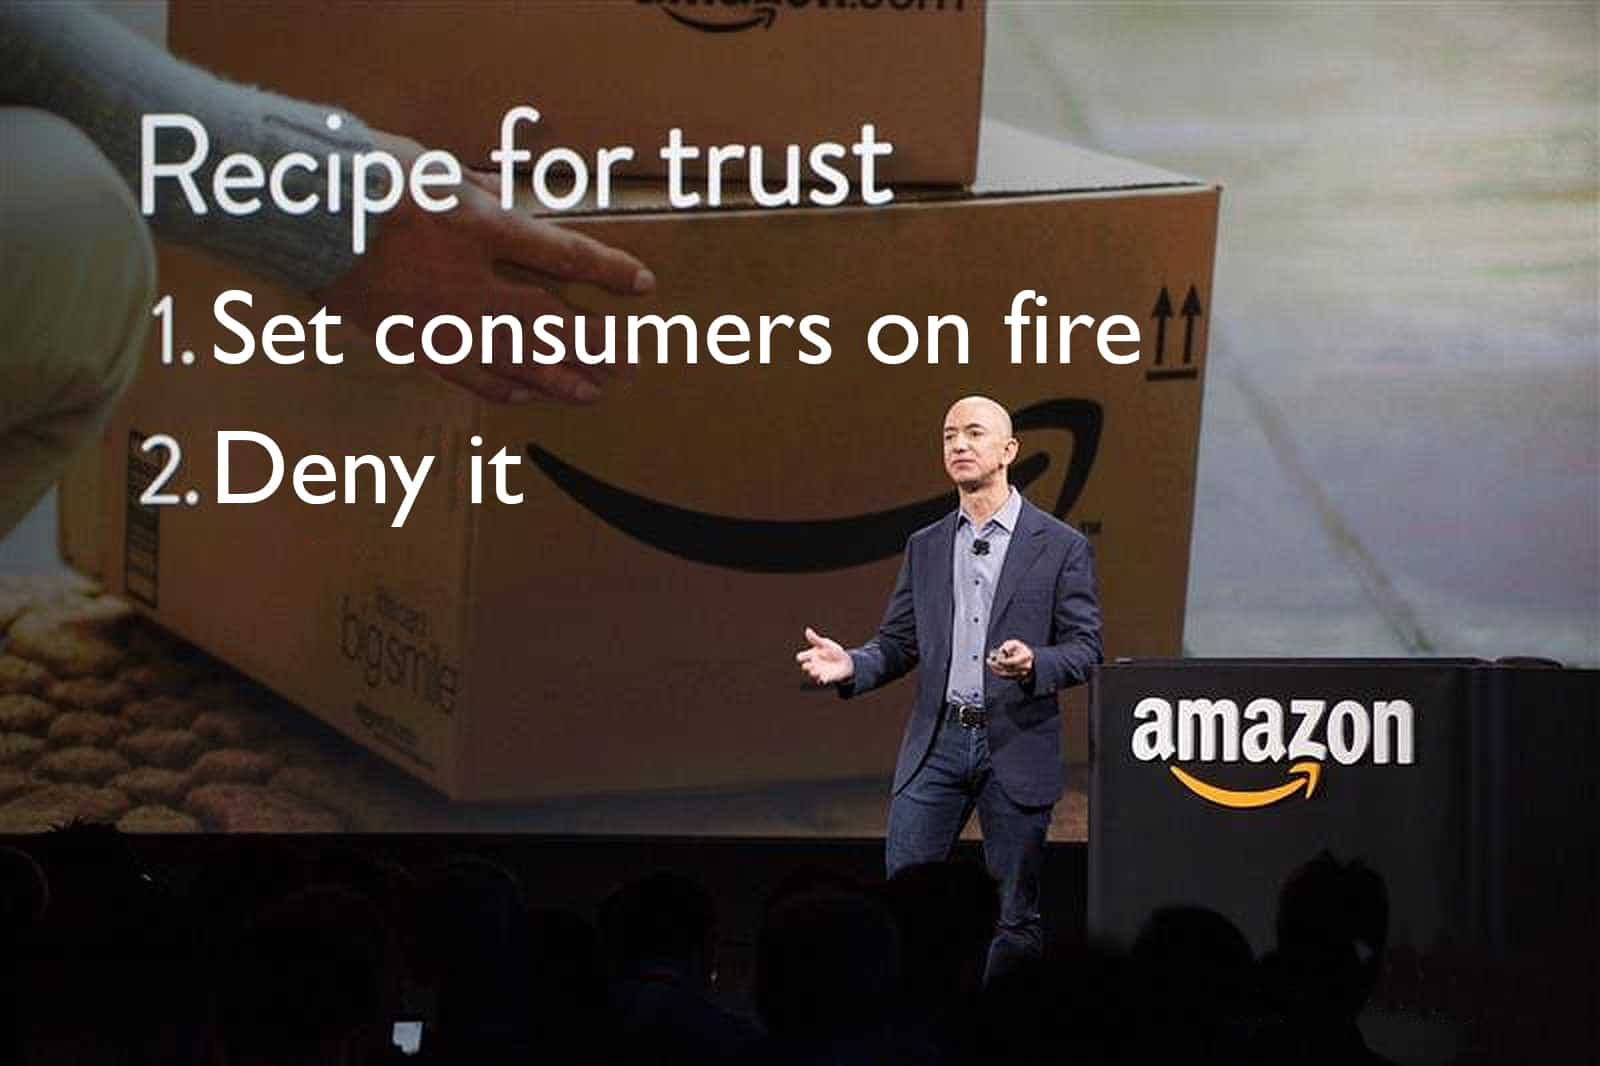 jeff bezos stood in front of a screent that reads Recipe for Trust 1. Set consumers on fire 2. Deny it